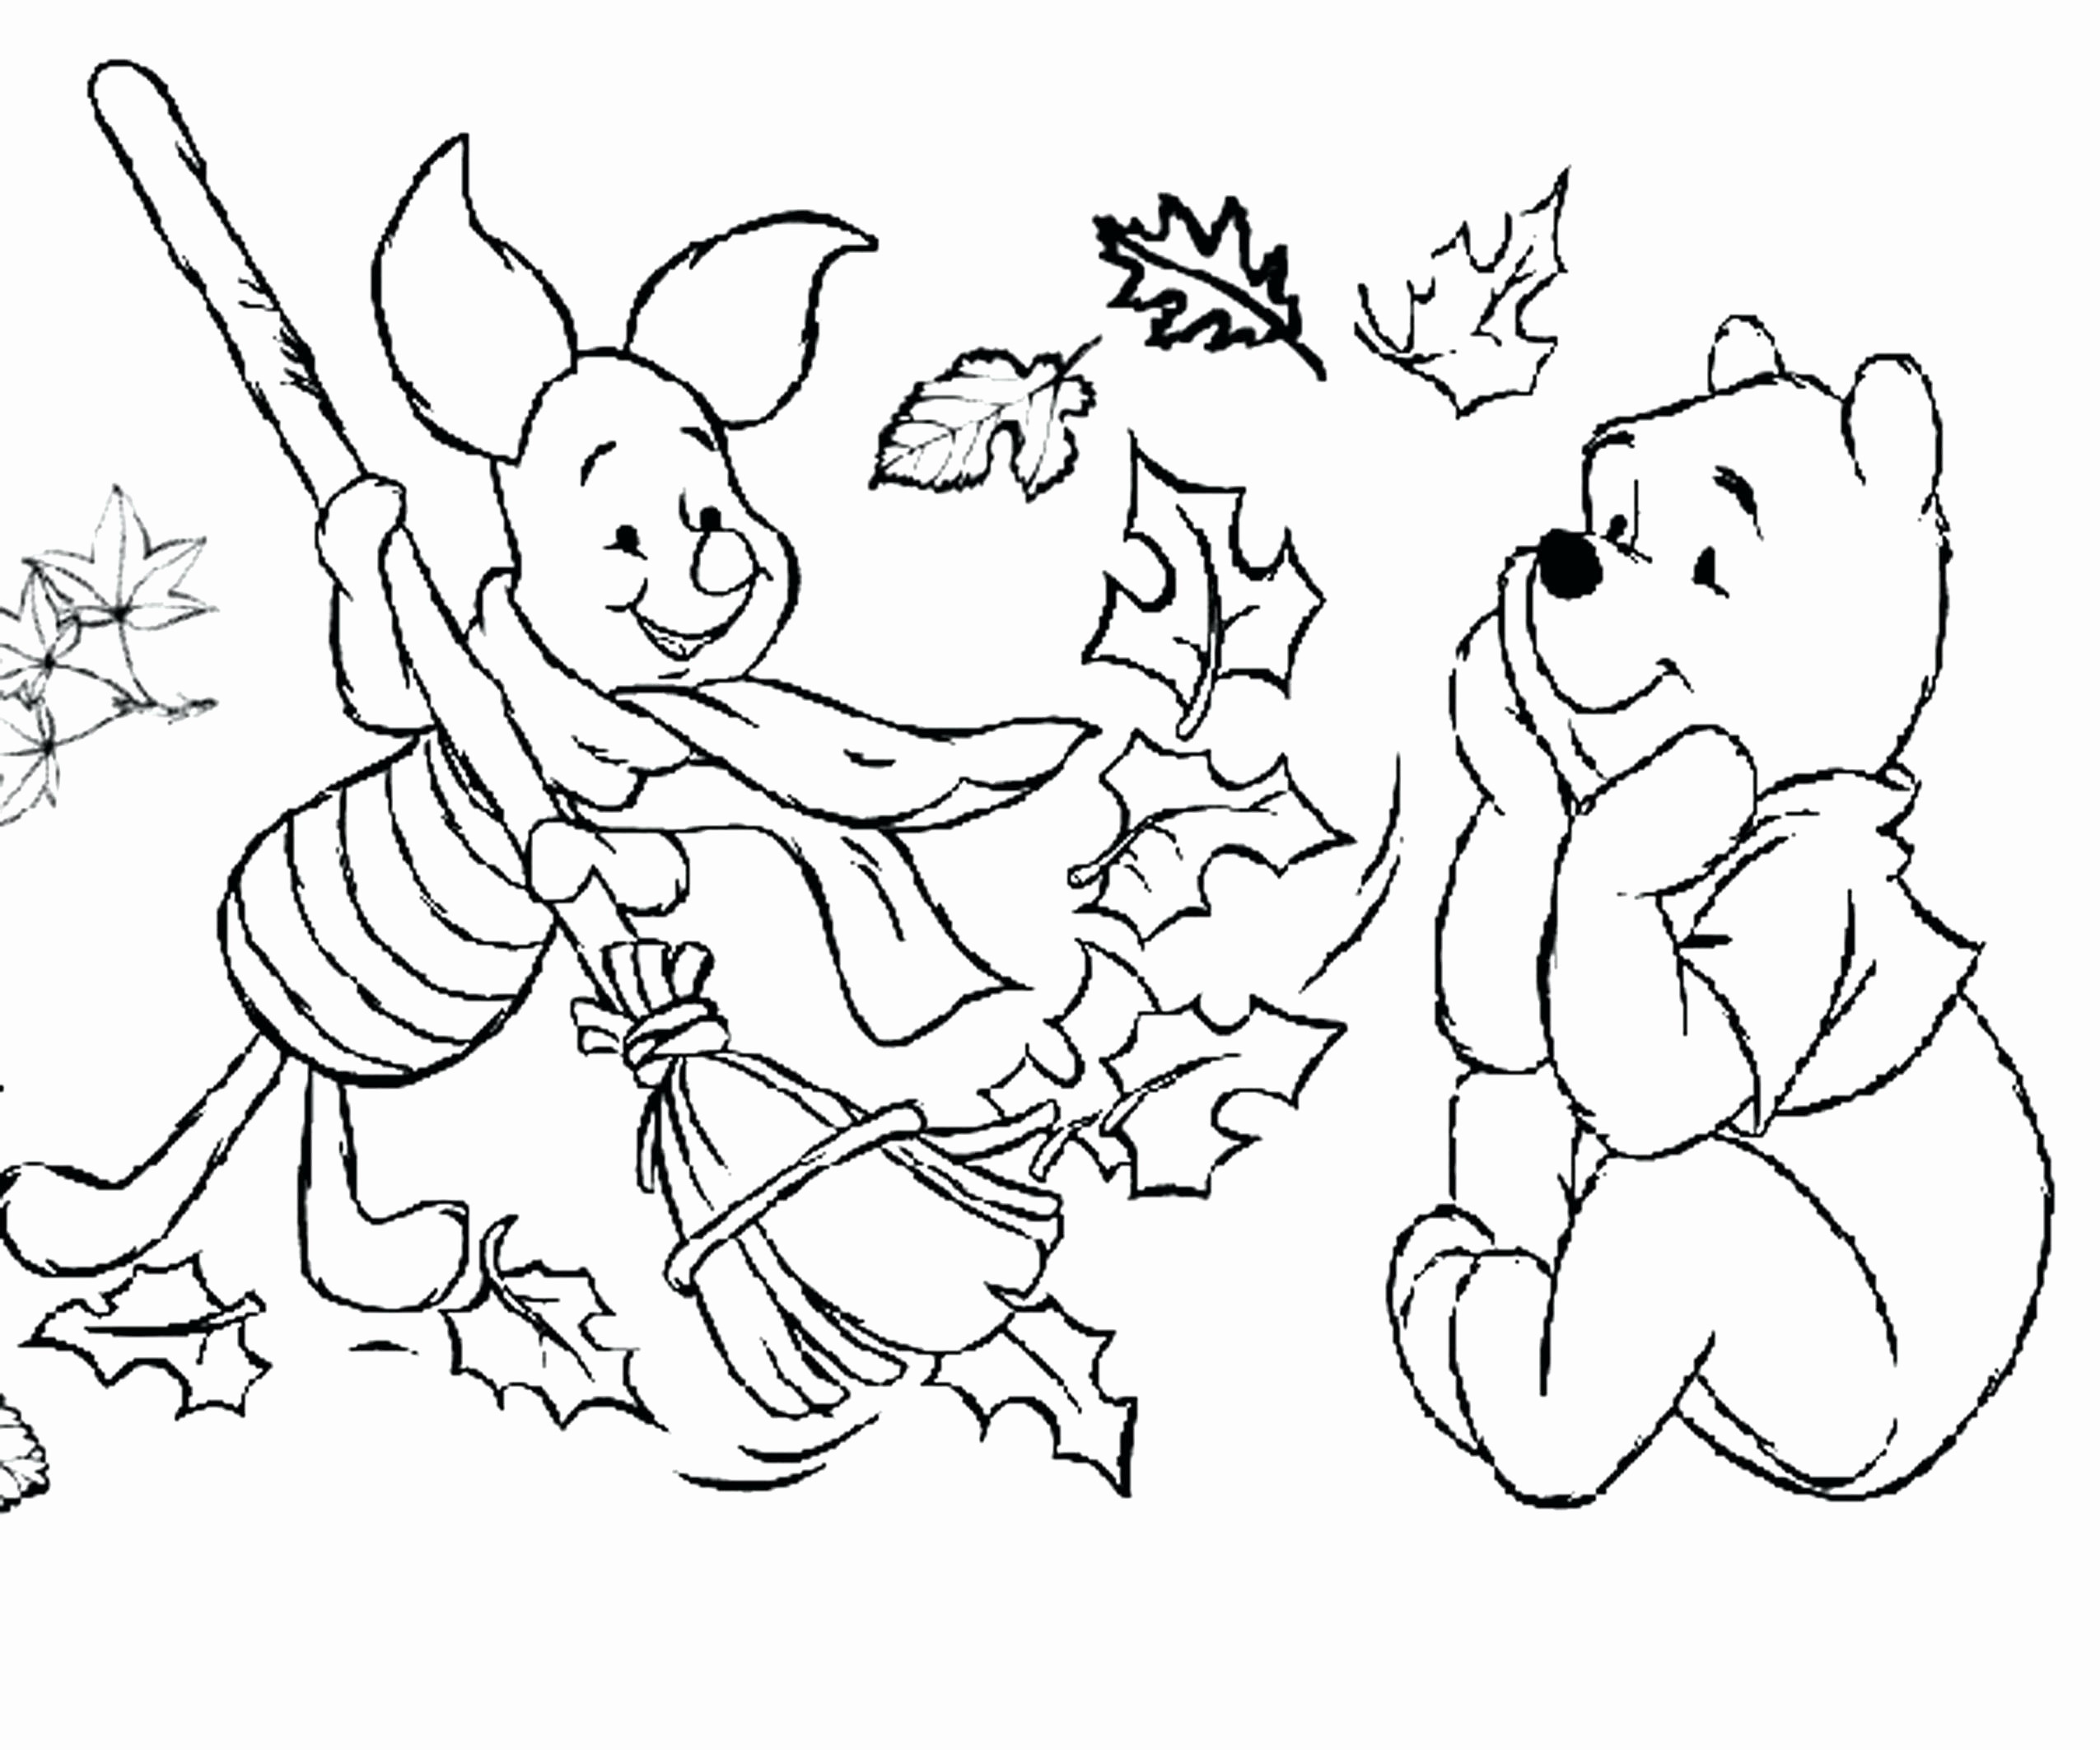 Skyrim Coloring Pages  Printable 4b - Free For kids